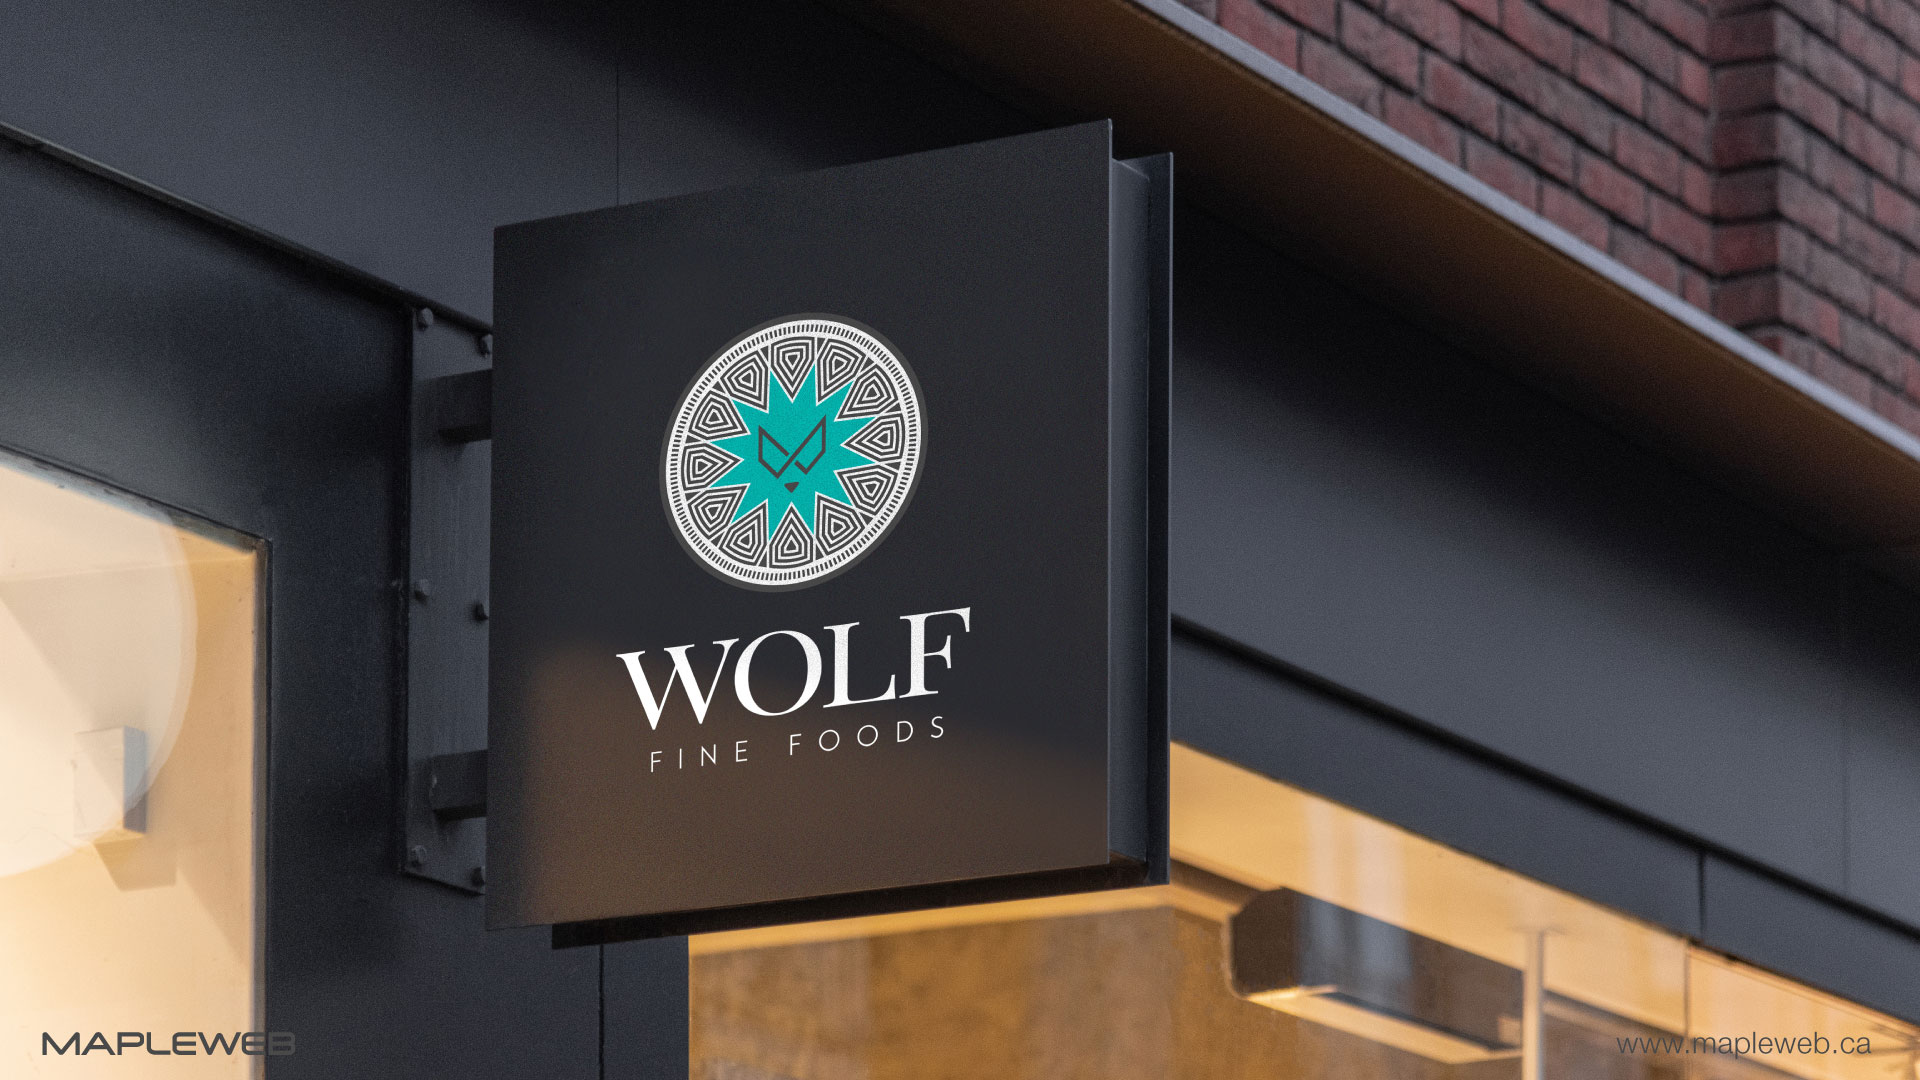 wolf-fine-foods-brand-logo-design-by-mapleweb-vancouver-canada-hotel-outsid-signage-mock